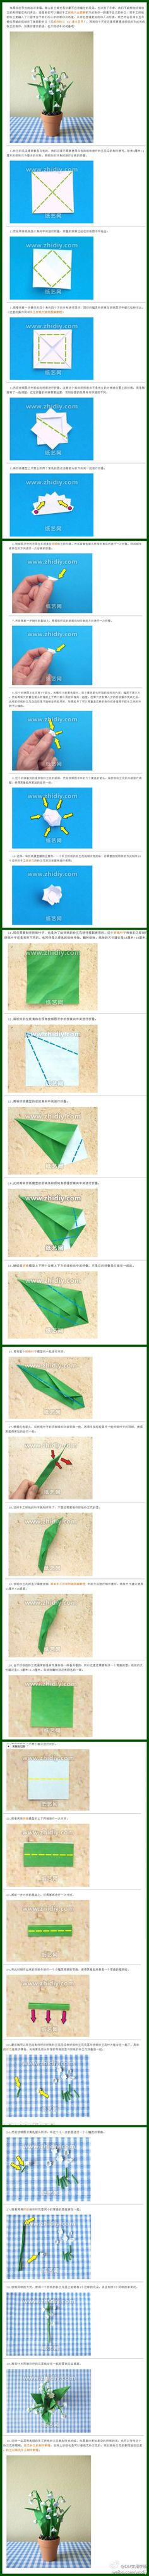 Origami Bell Orchid Flower - this looks like the flower from Once Upon a Time, TV show..Snow's mom